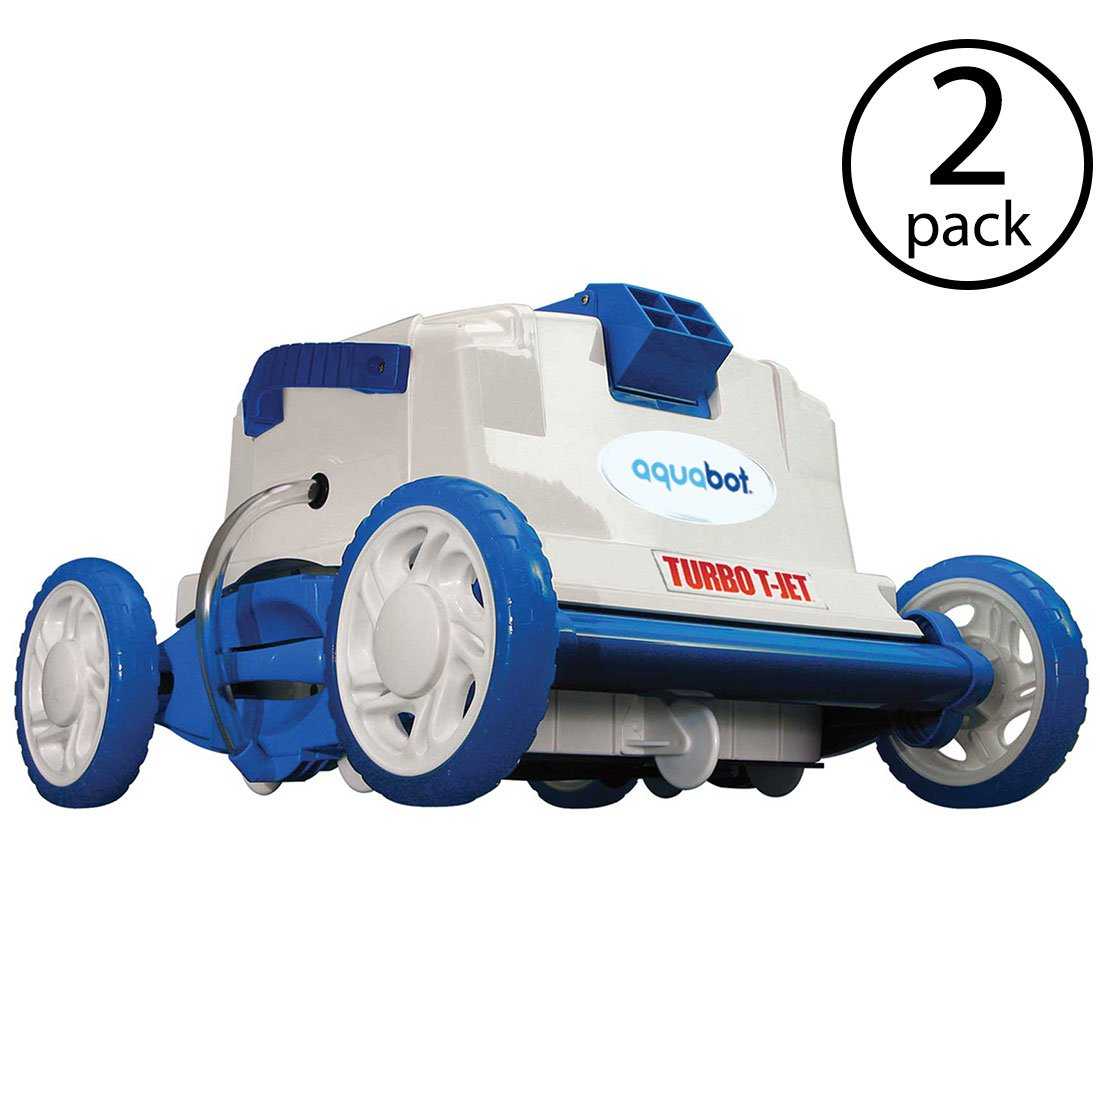 Aquabot Turbo T Jet In-Ground Automatic Robotic Swimming Pool Cleaner (2 Pack)